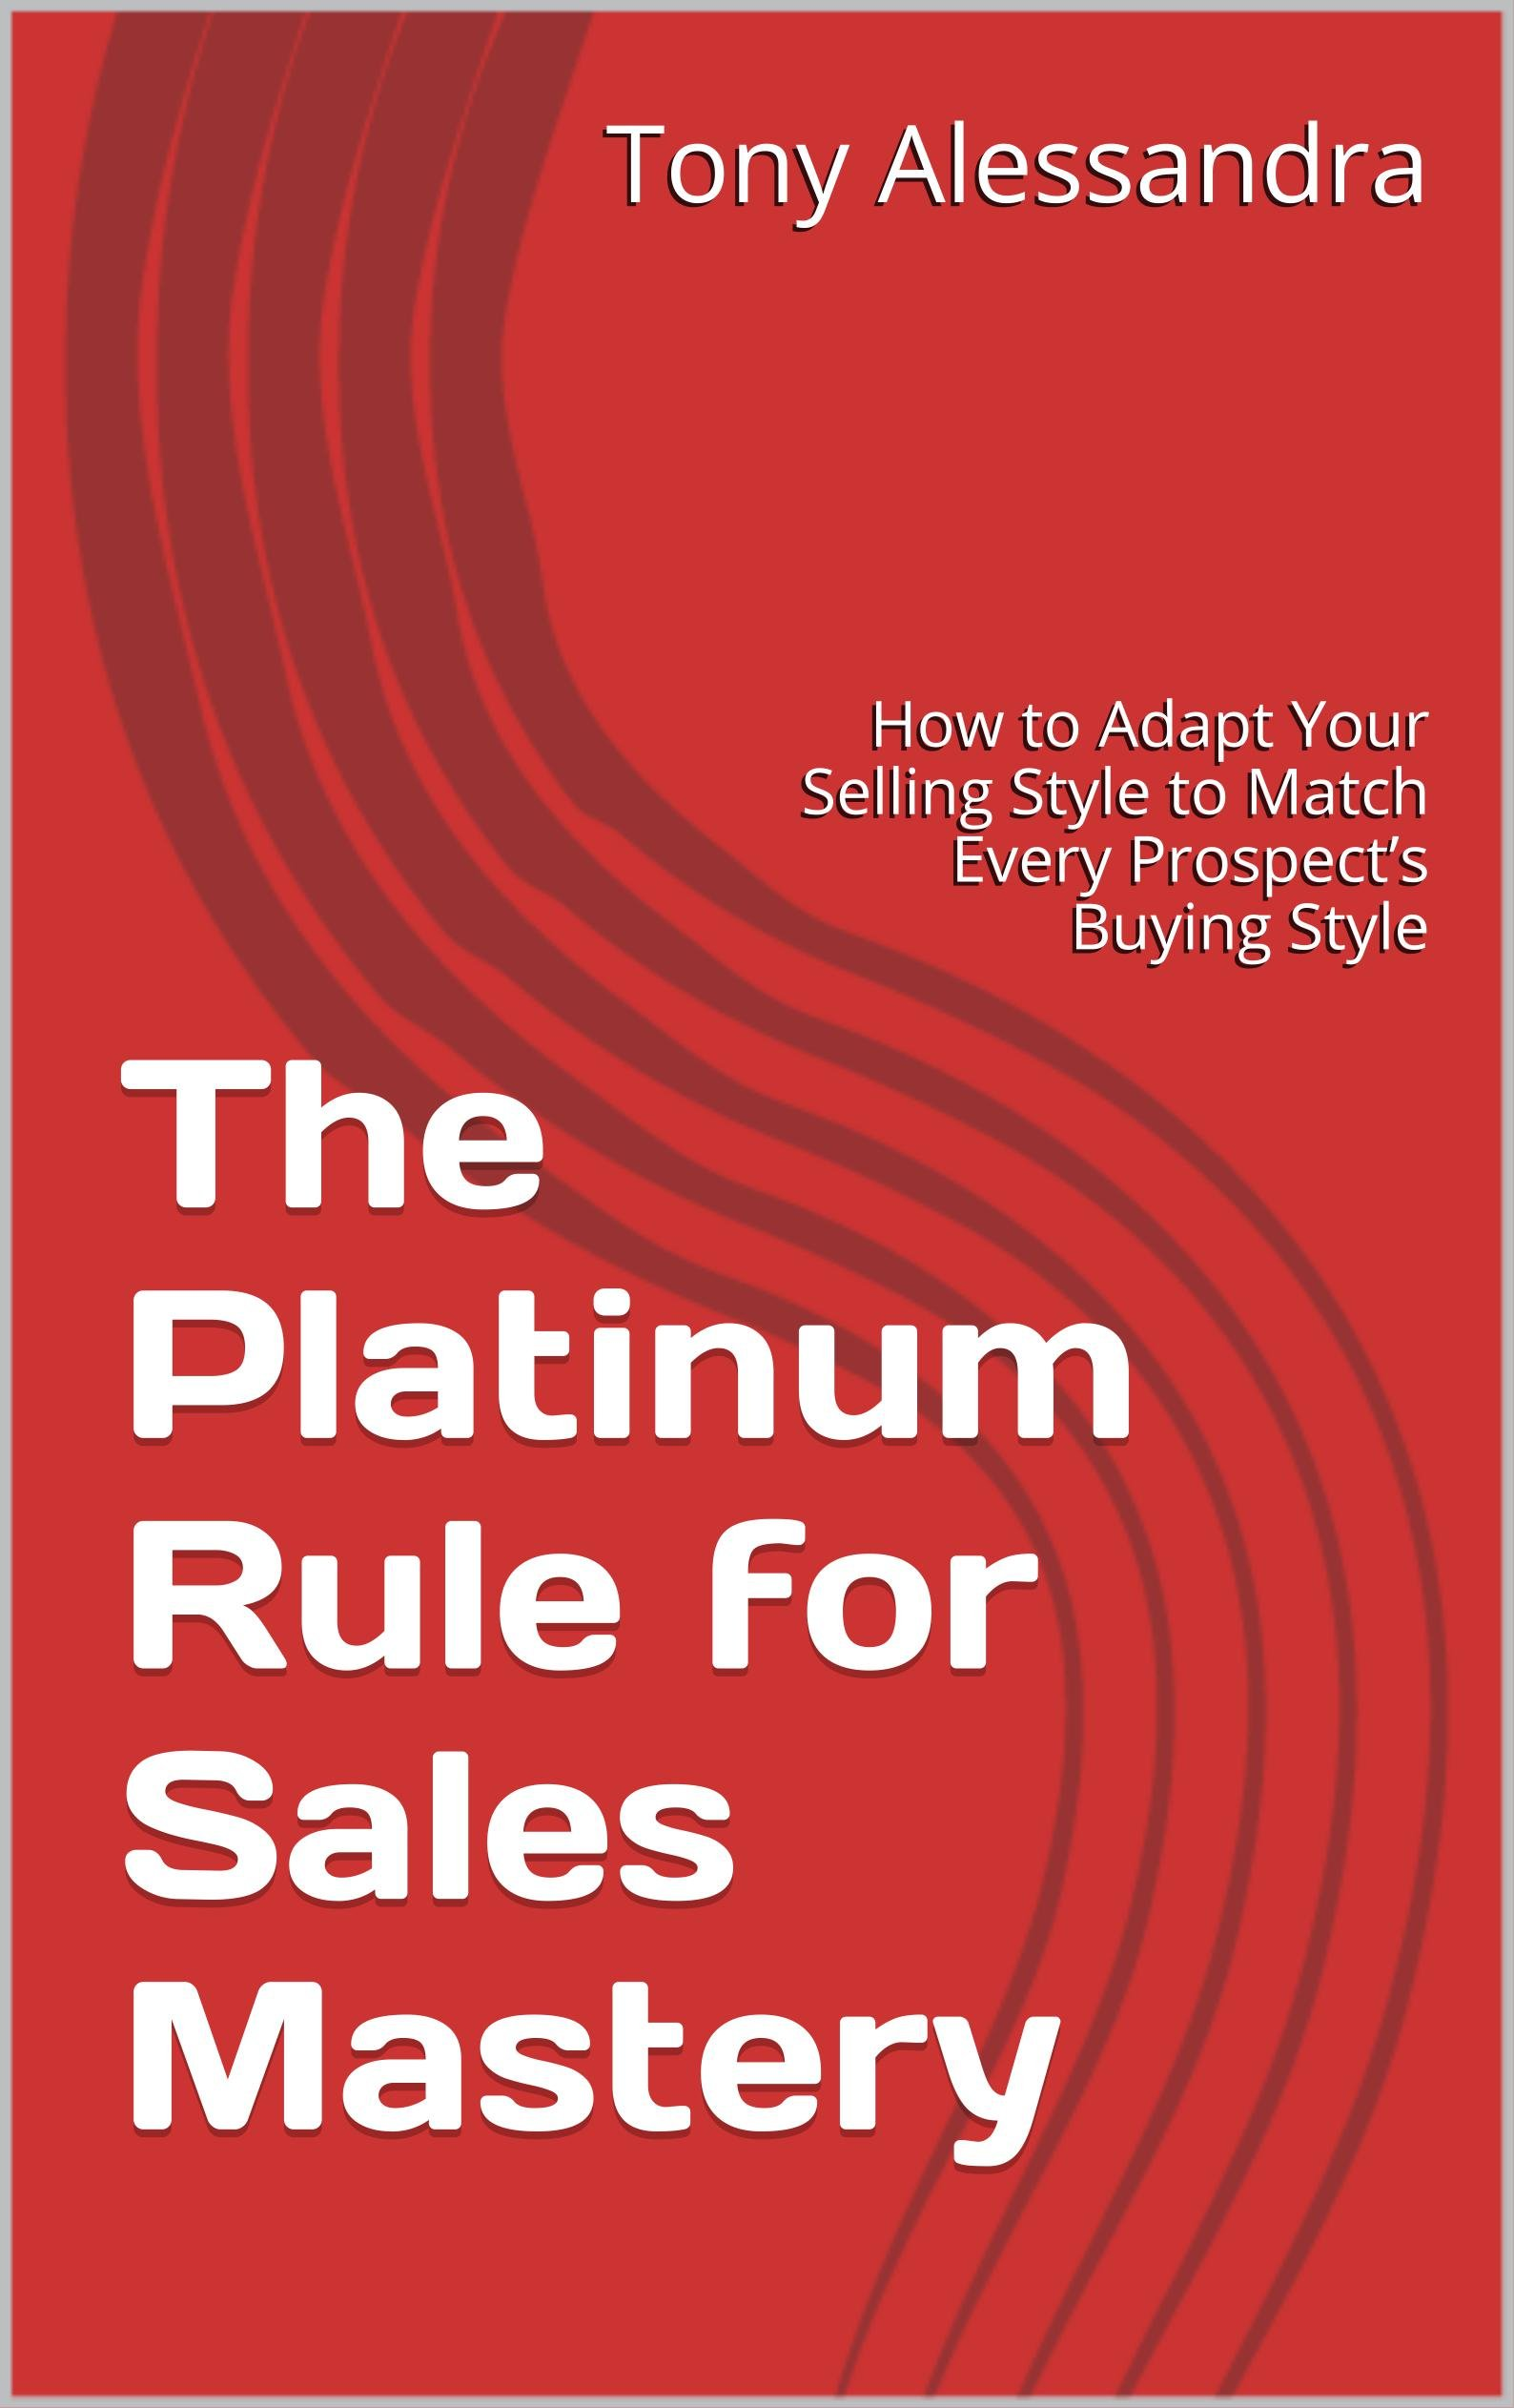 The Platinum Rule for Sales Mastery: How to Adapt Your Selling Style to Match Every Prospect's Buying Style